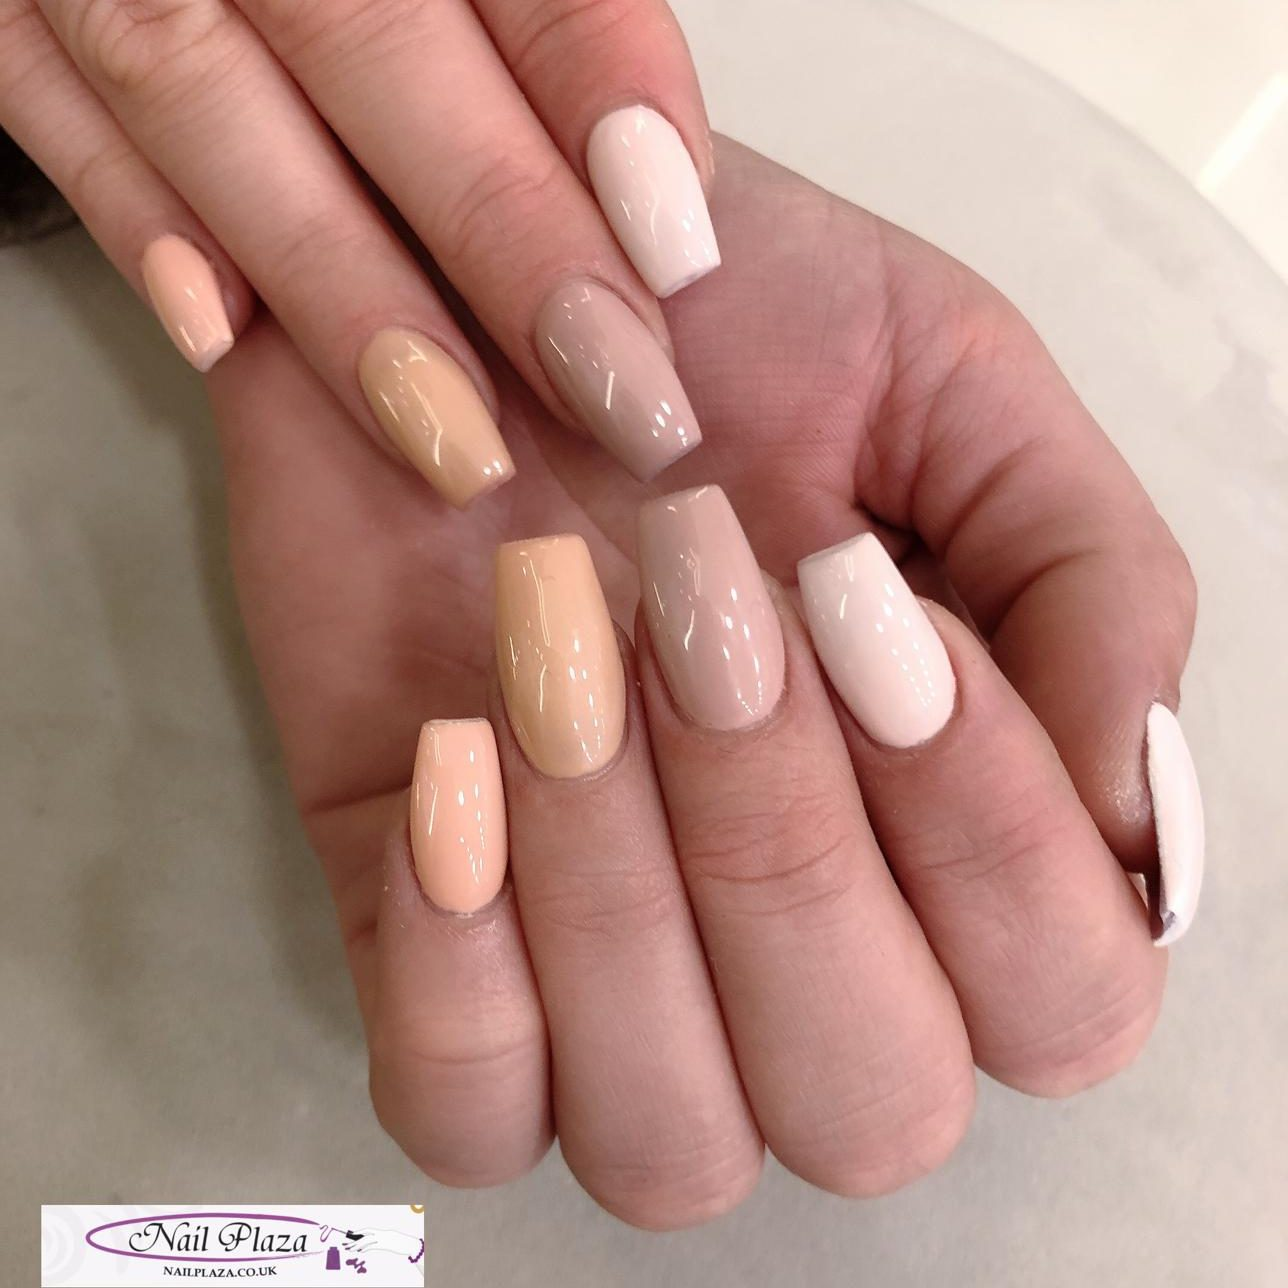 nail-plaza-twickenham-nail-design-061120-12